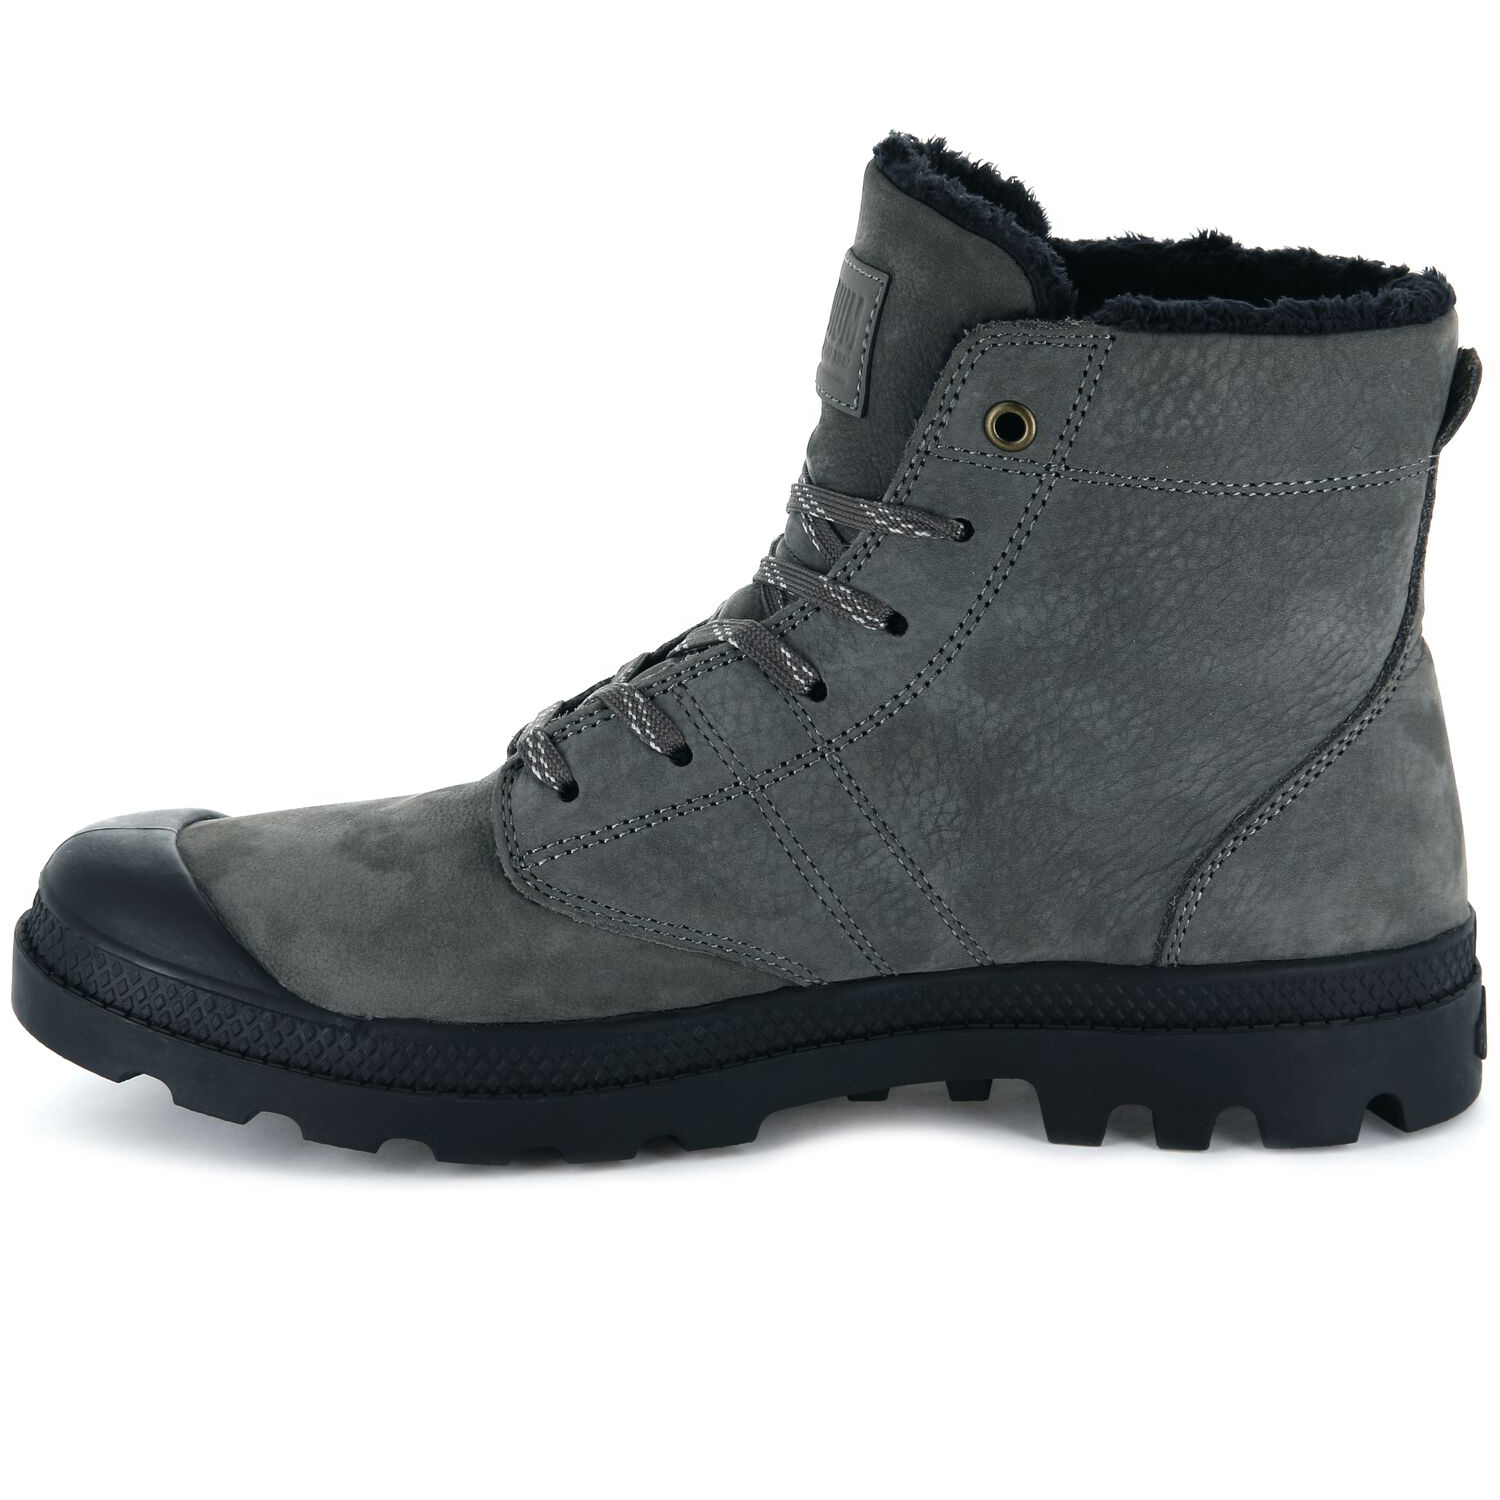 Palladium-Mens-Pallabrousse-Leather-Hi-Top-Boots-Walking-Workwear-Lace-Up-Shoes thumbnail 4